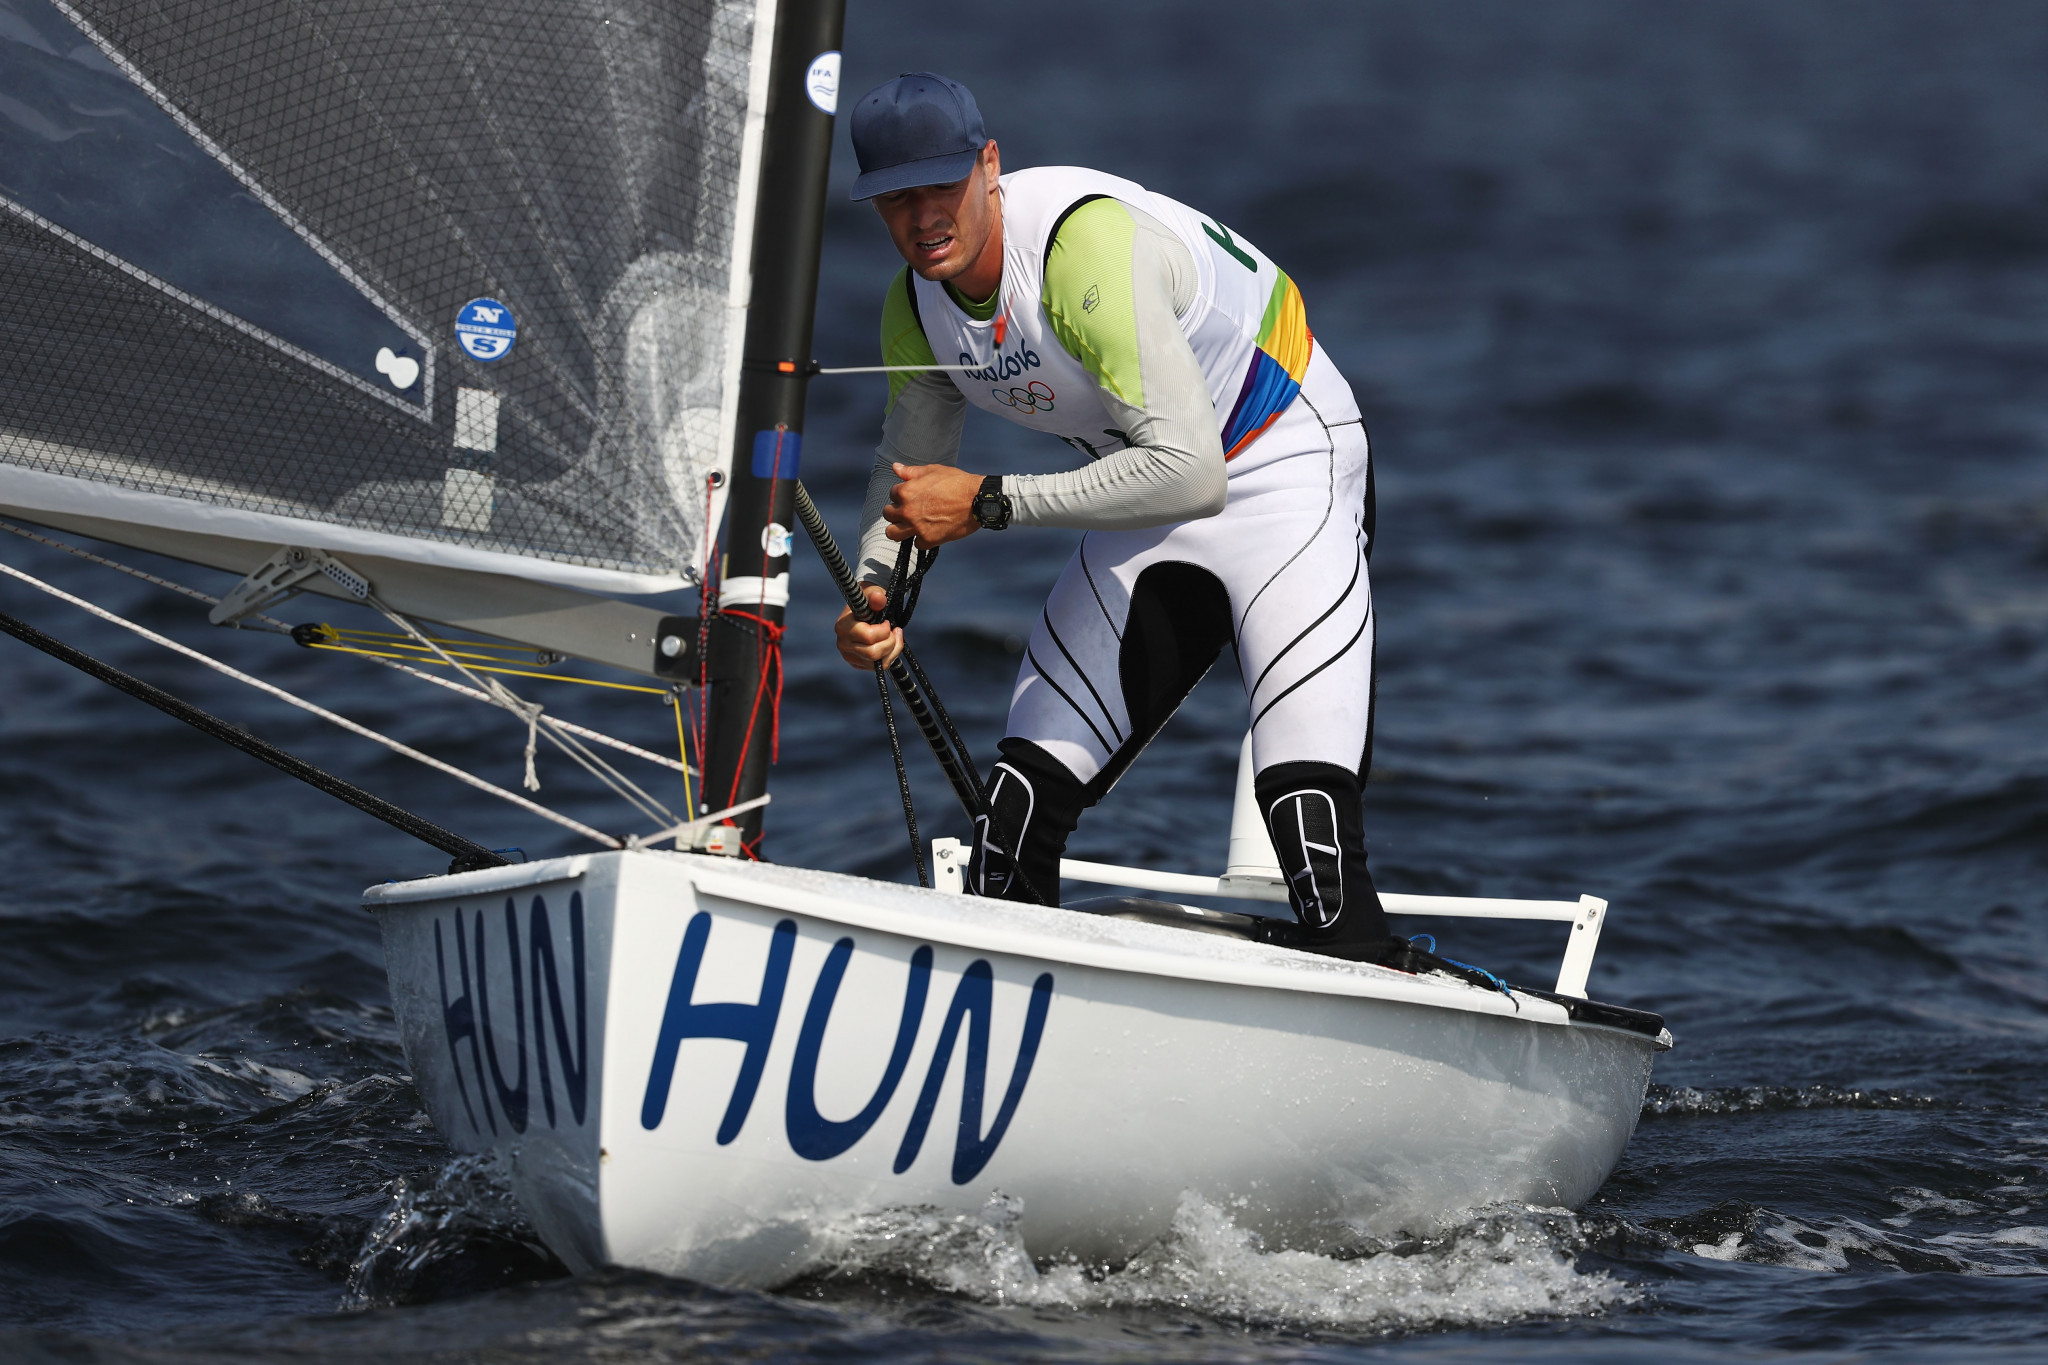 Berecz wins Finn European title with a race to spare in Vilamoura